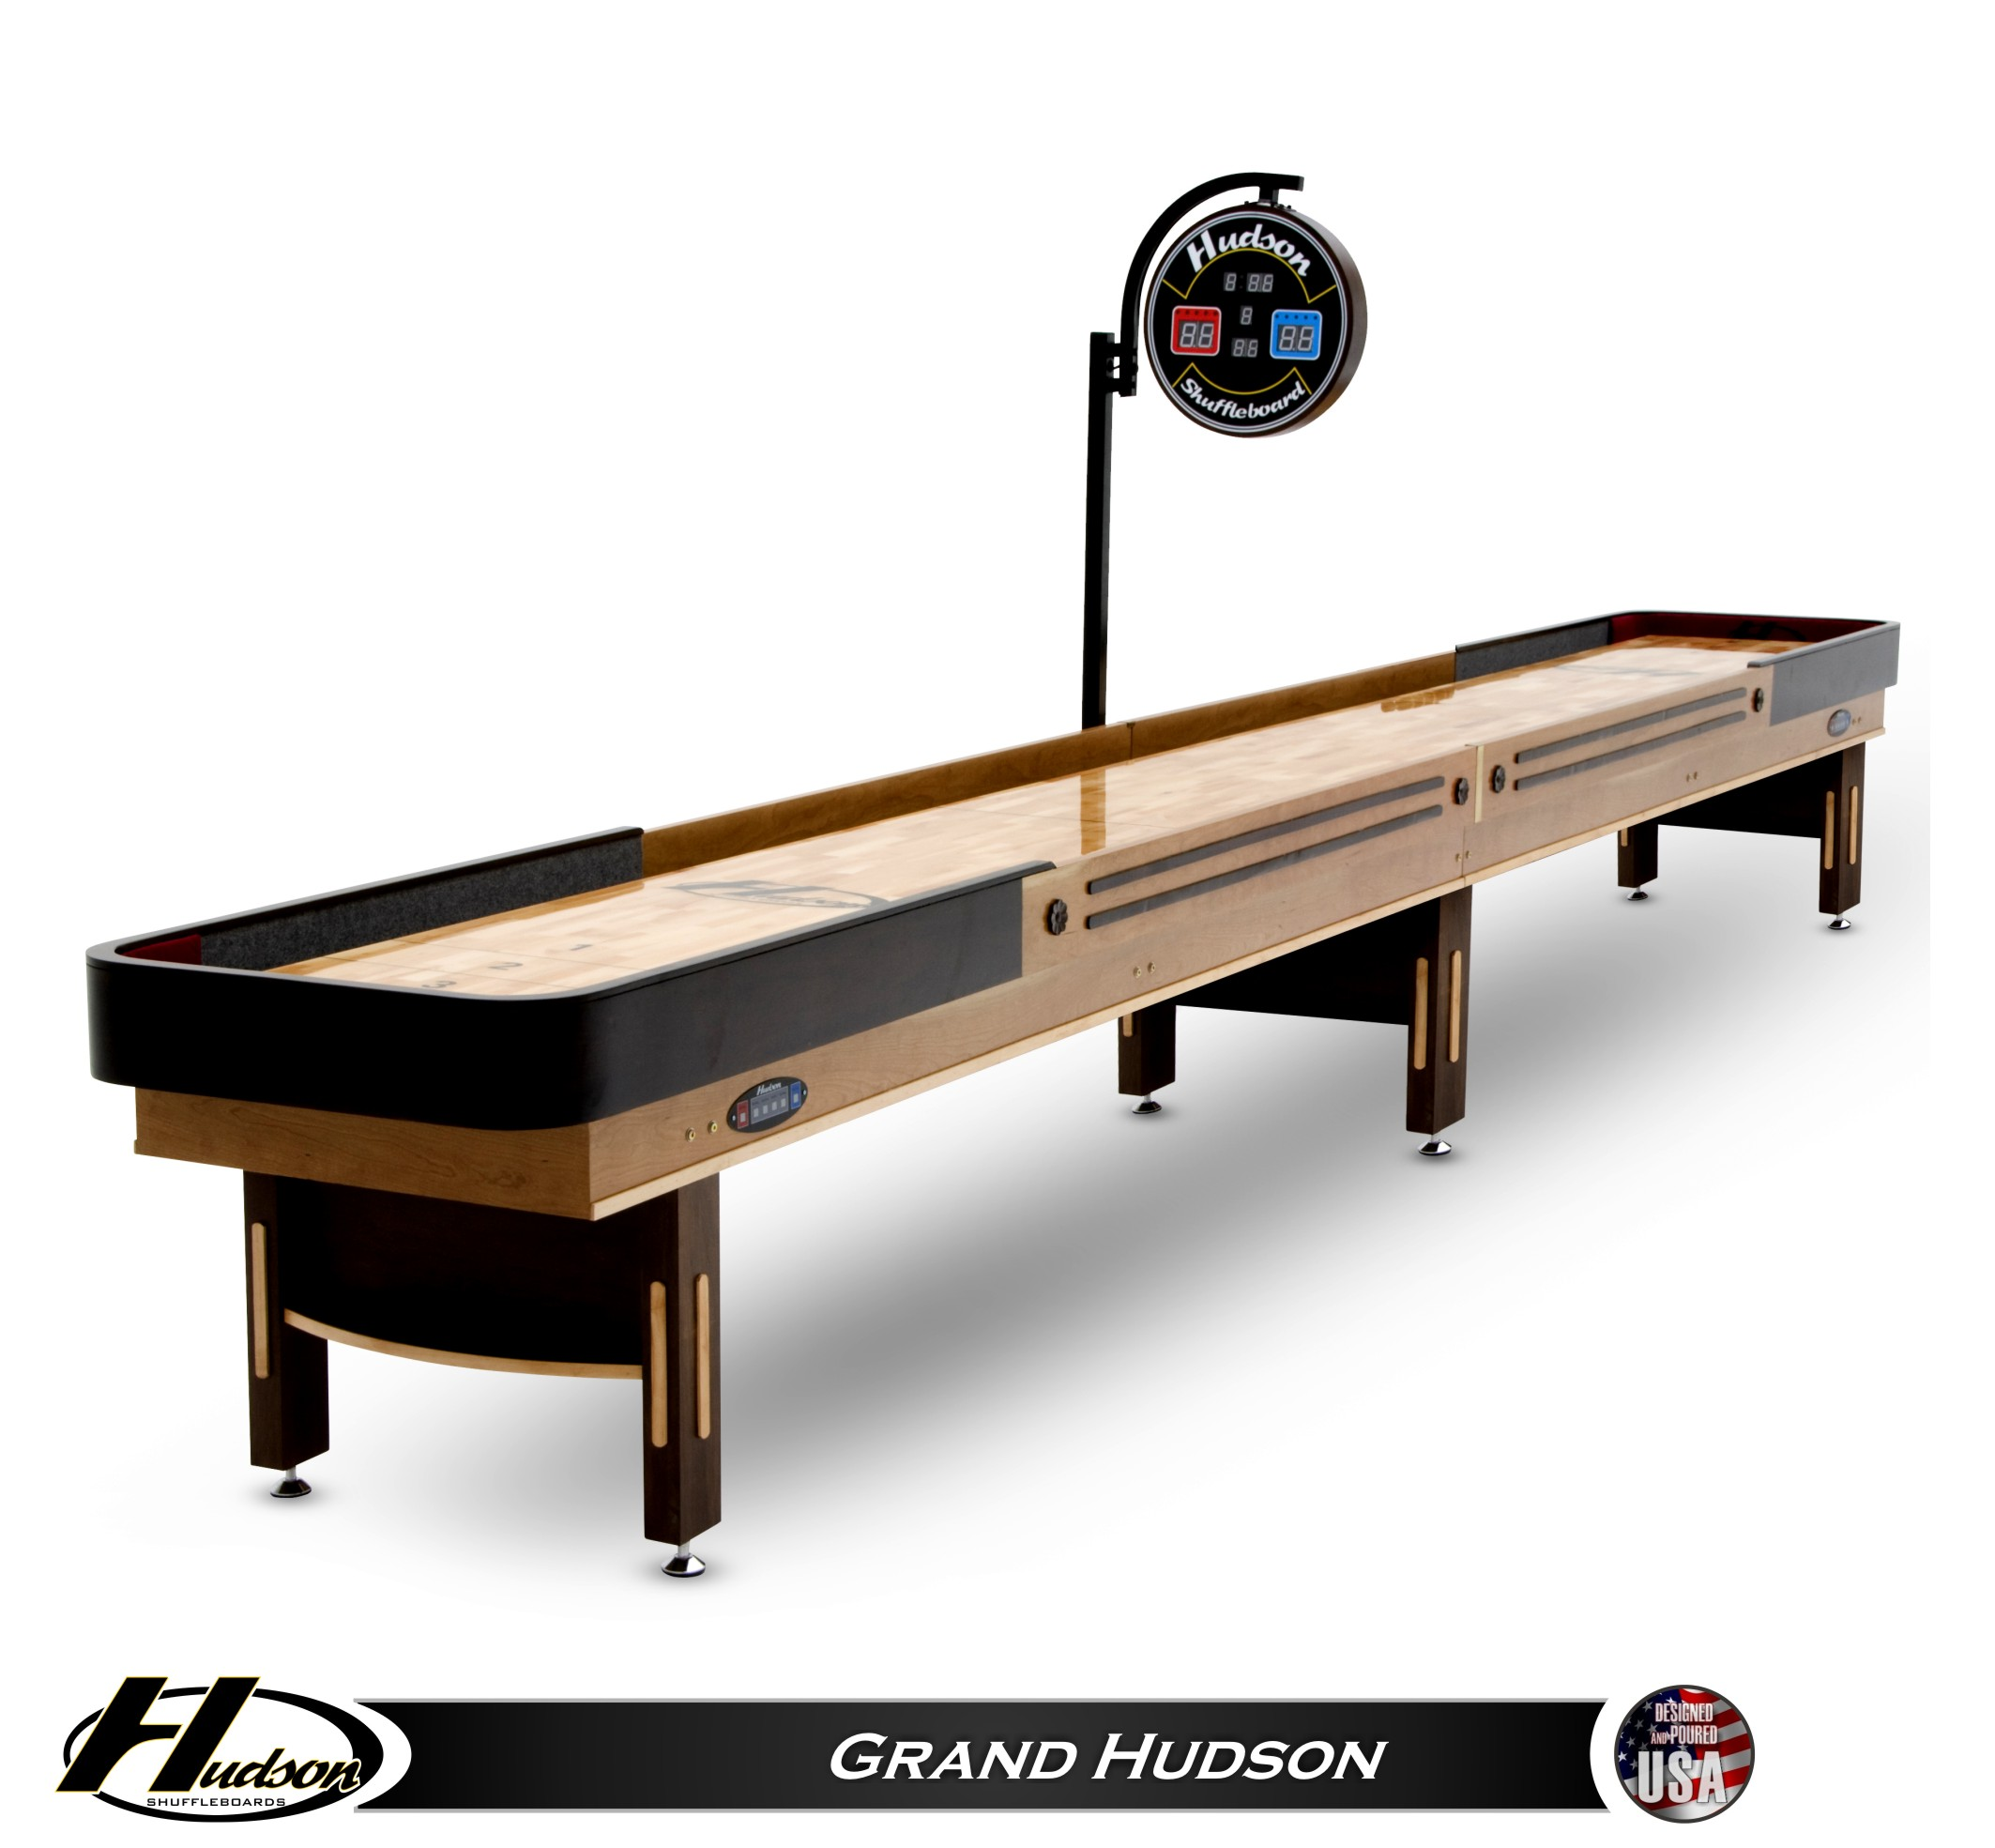 14u0027 Grand Hudson Shuffleboard Table